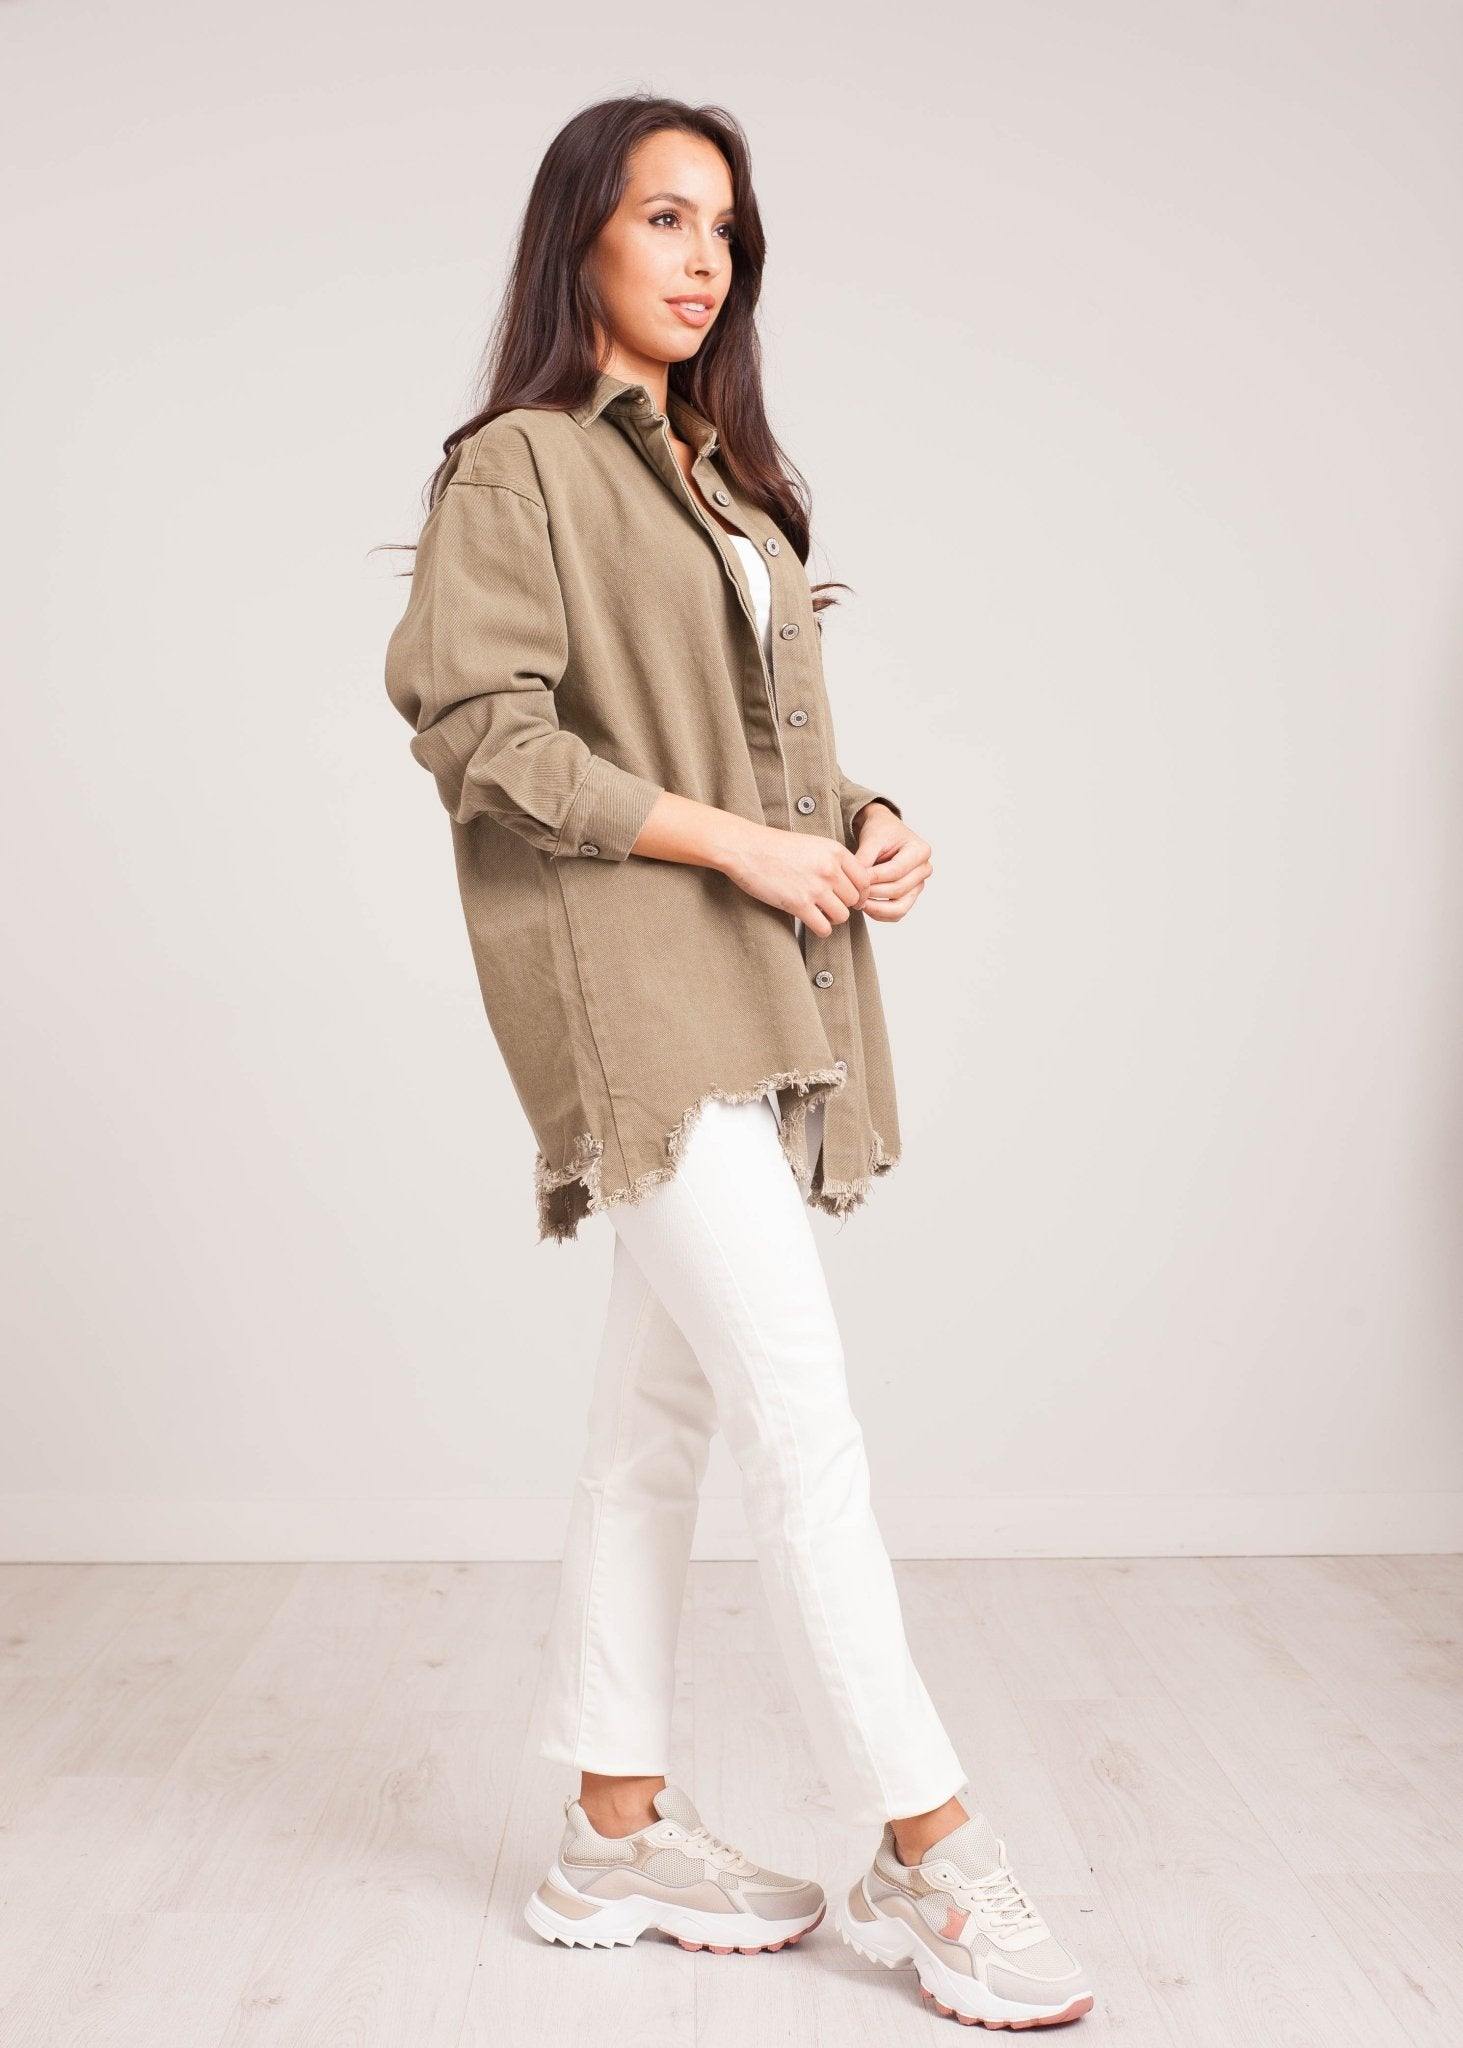 Elsa Shacket in Khaki - The Walk in Wardrobe